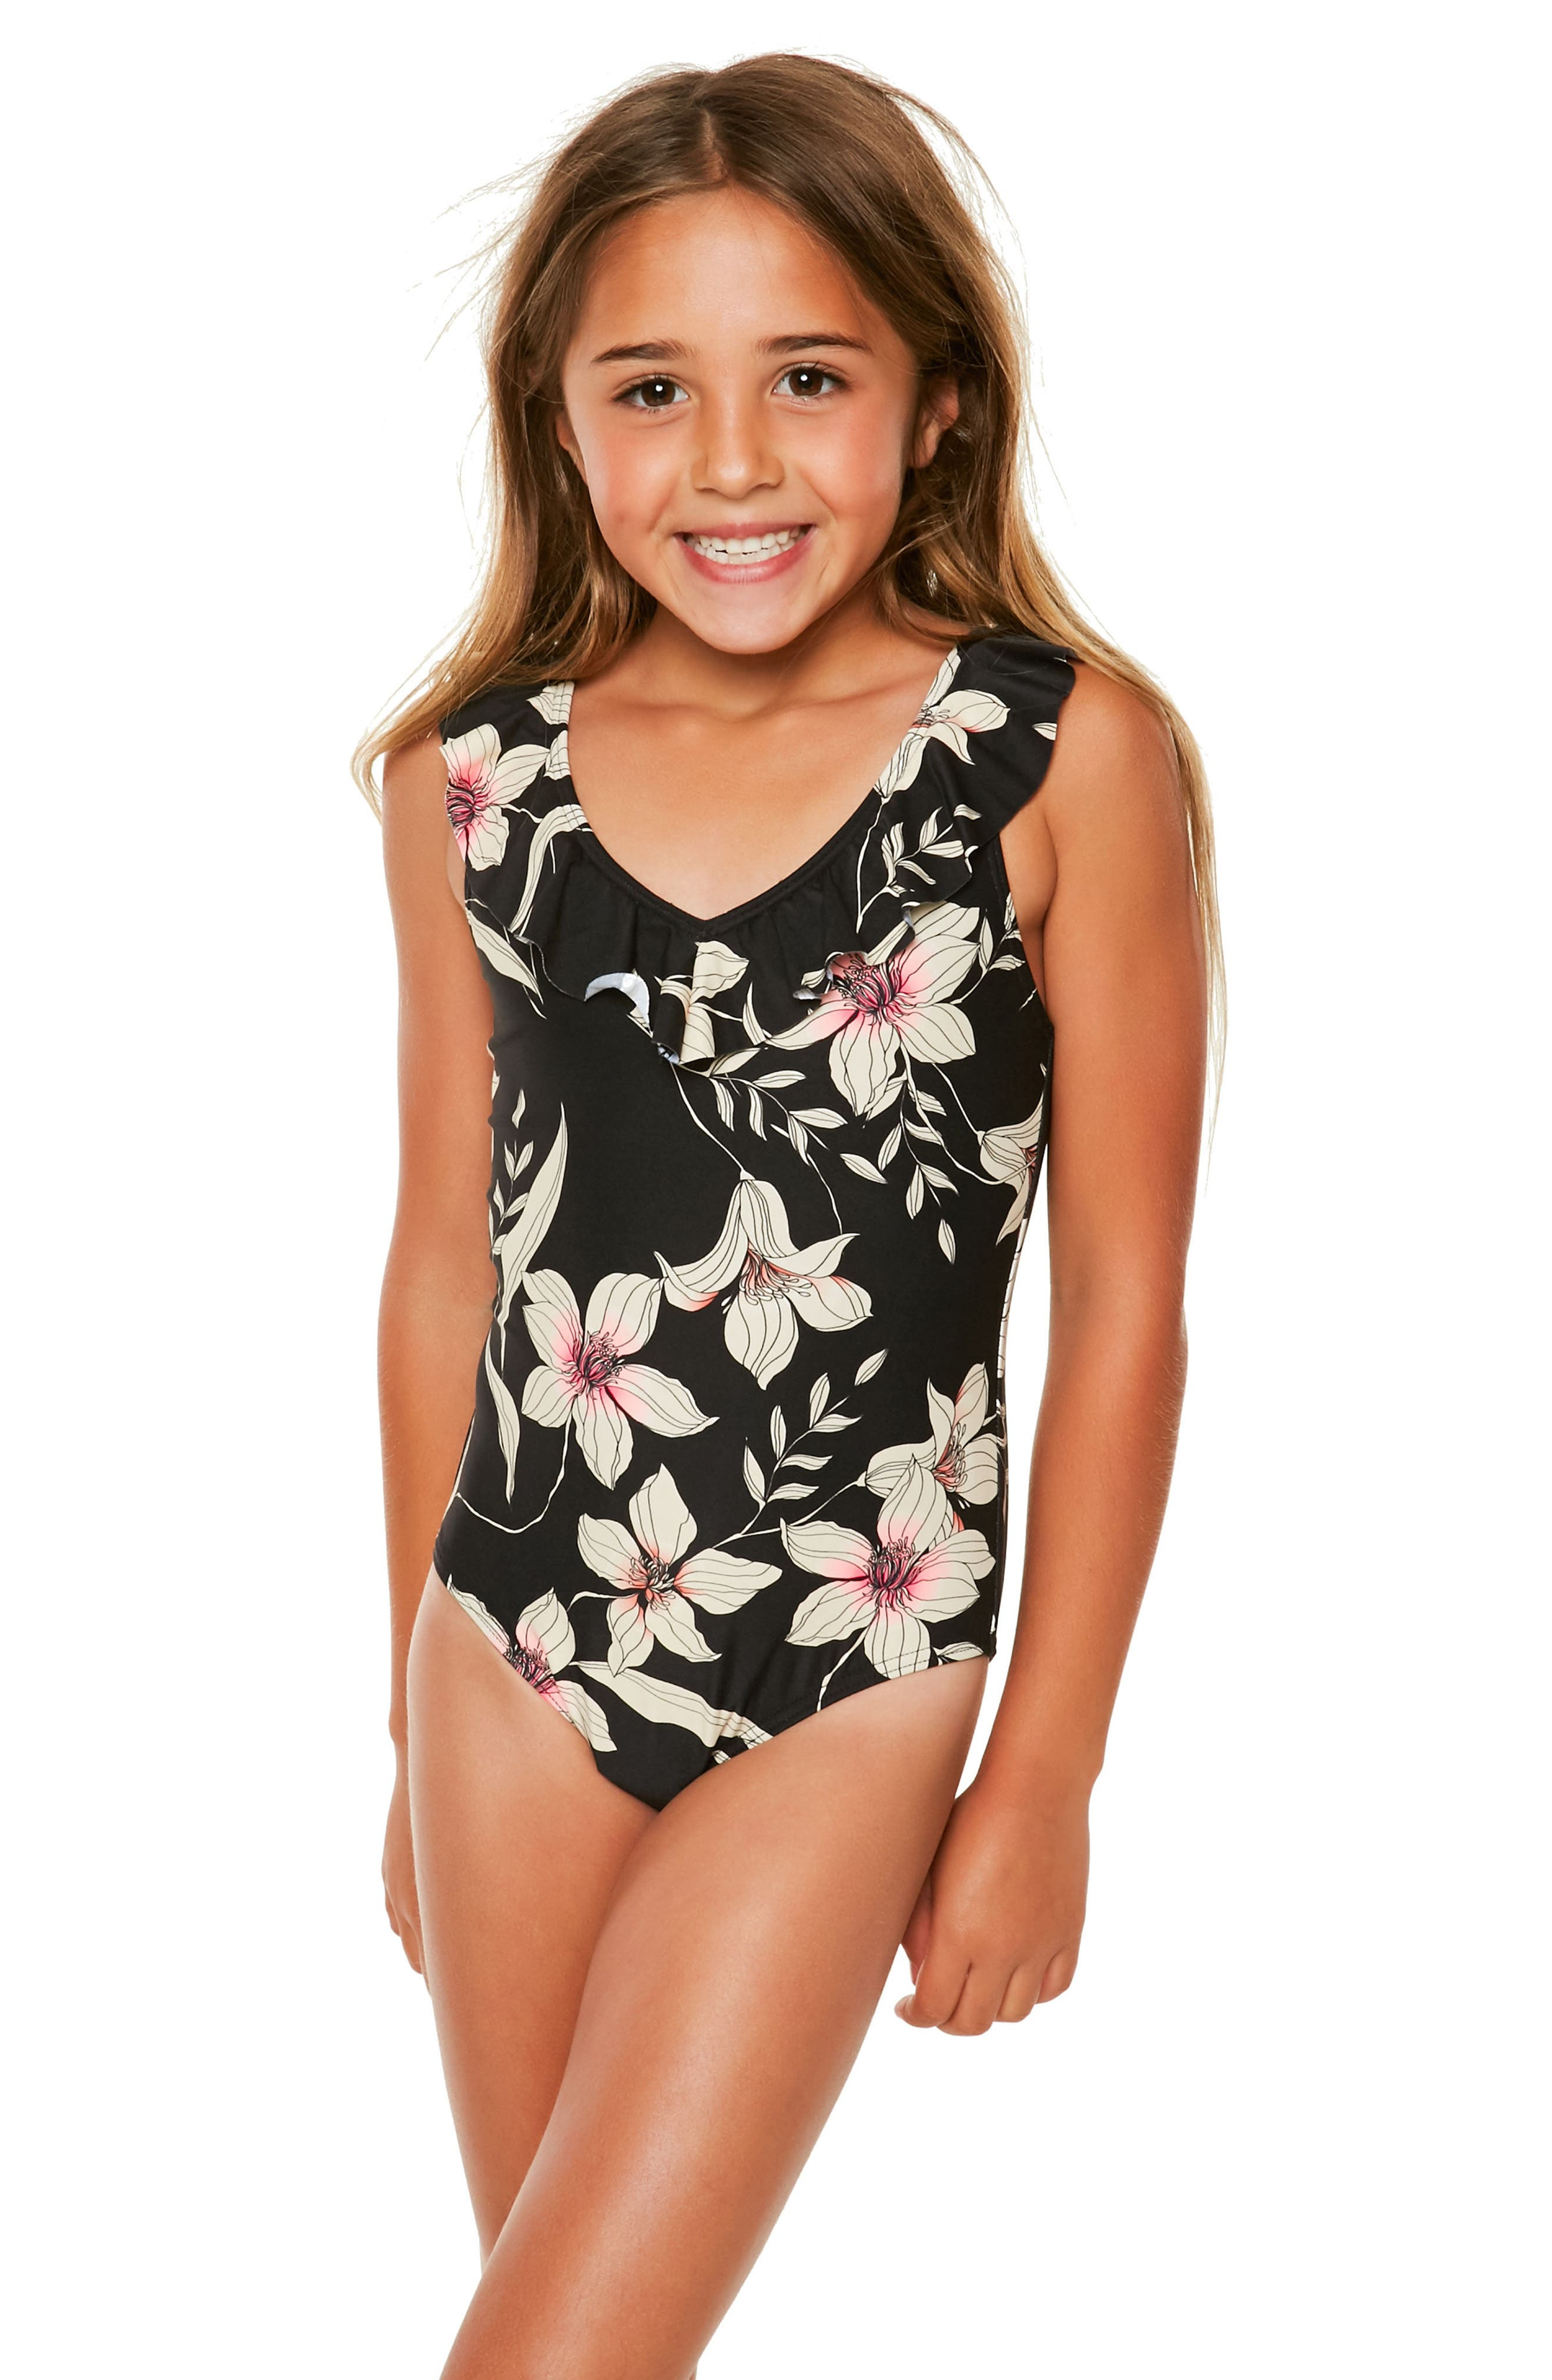 Alternate Image 1 Selected - O'Neill Albany Ruffle One-Piece Swimsuit (Toddler Girls & Little Girls)